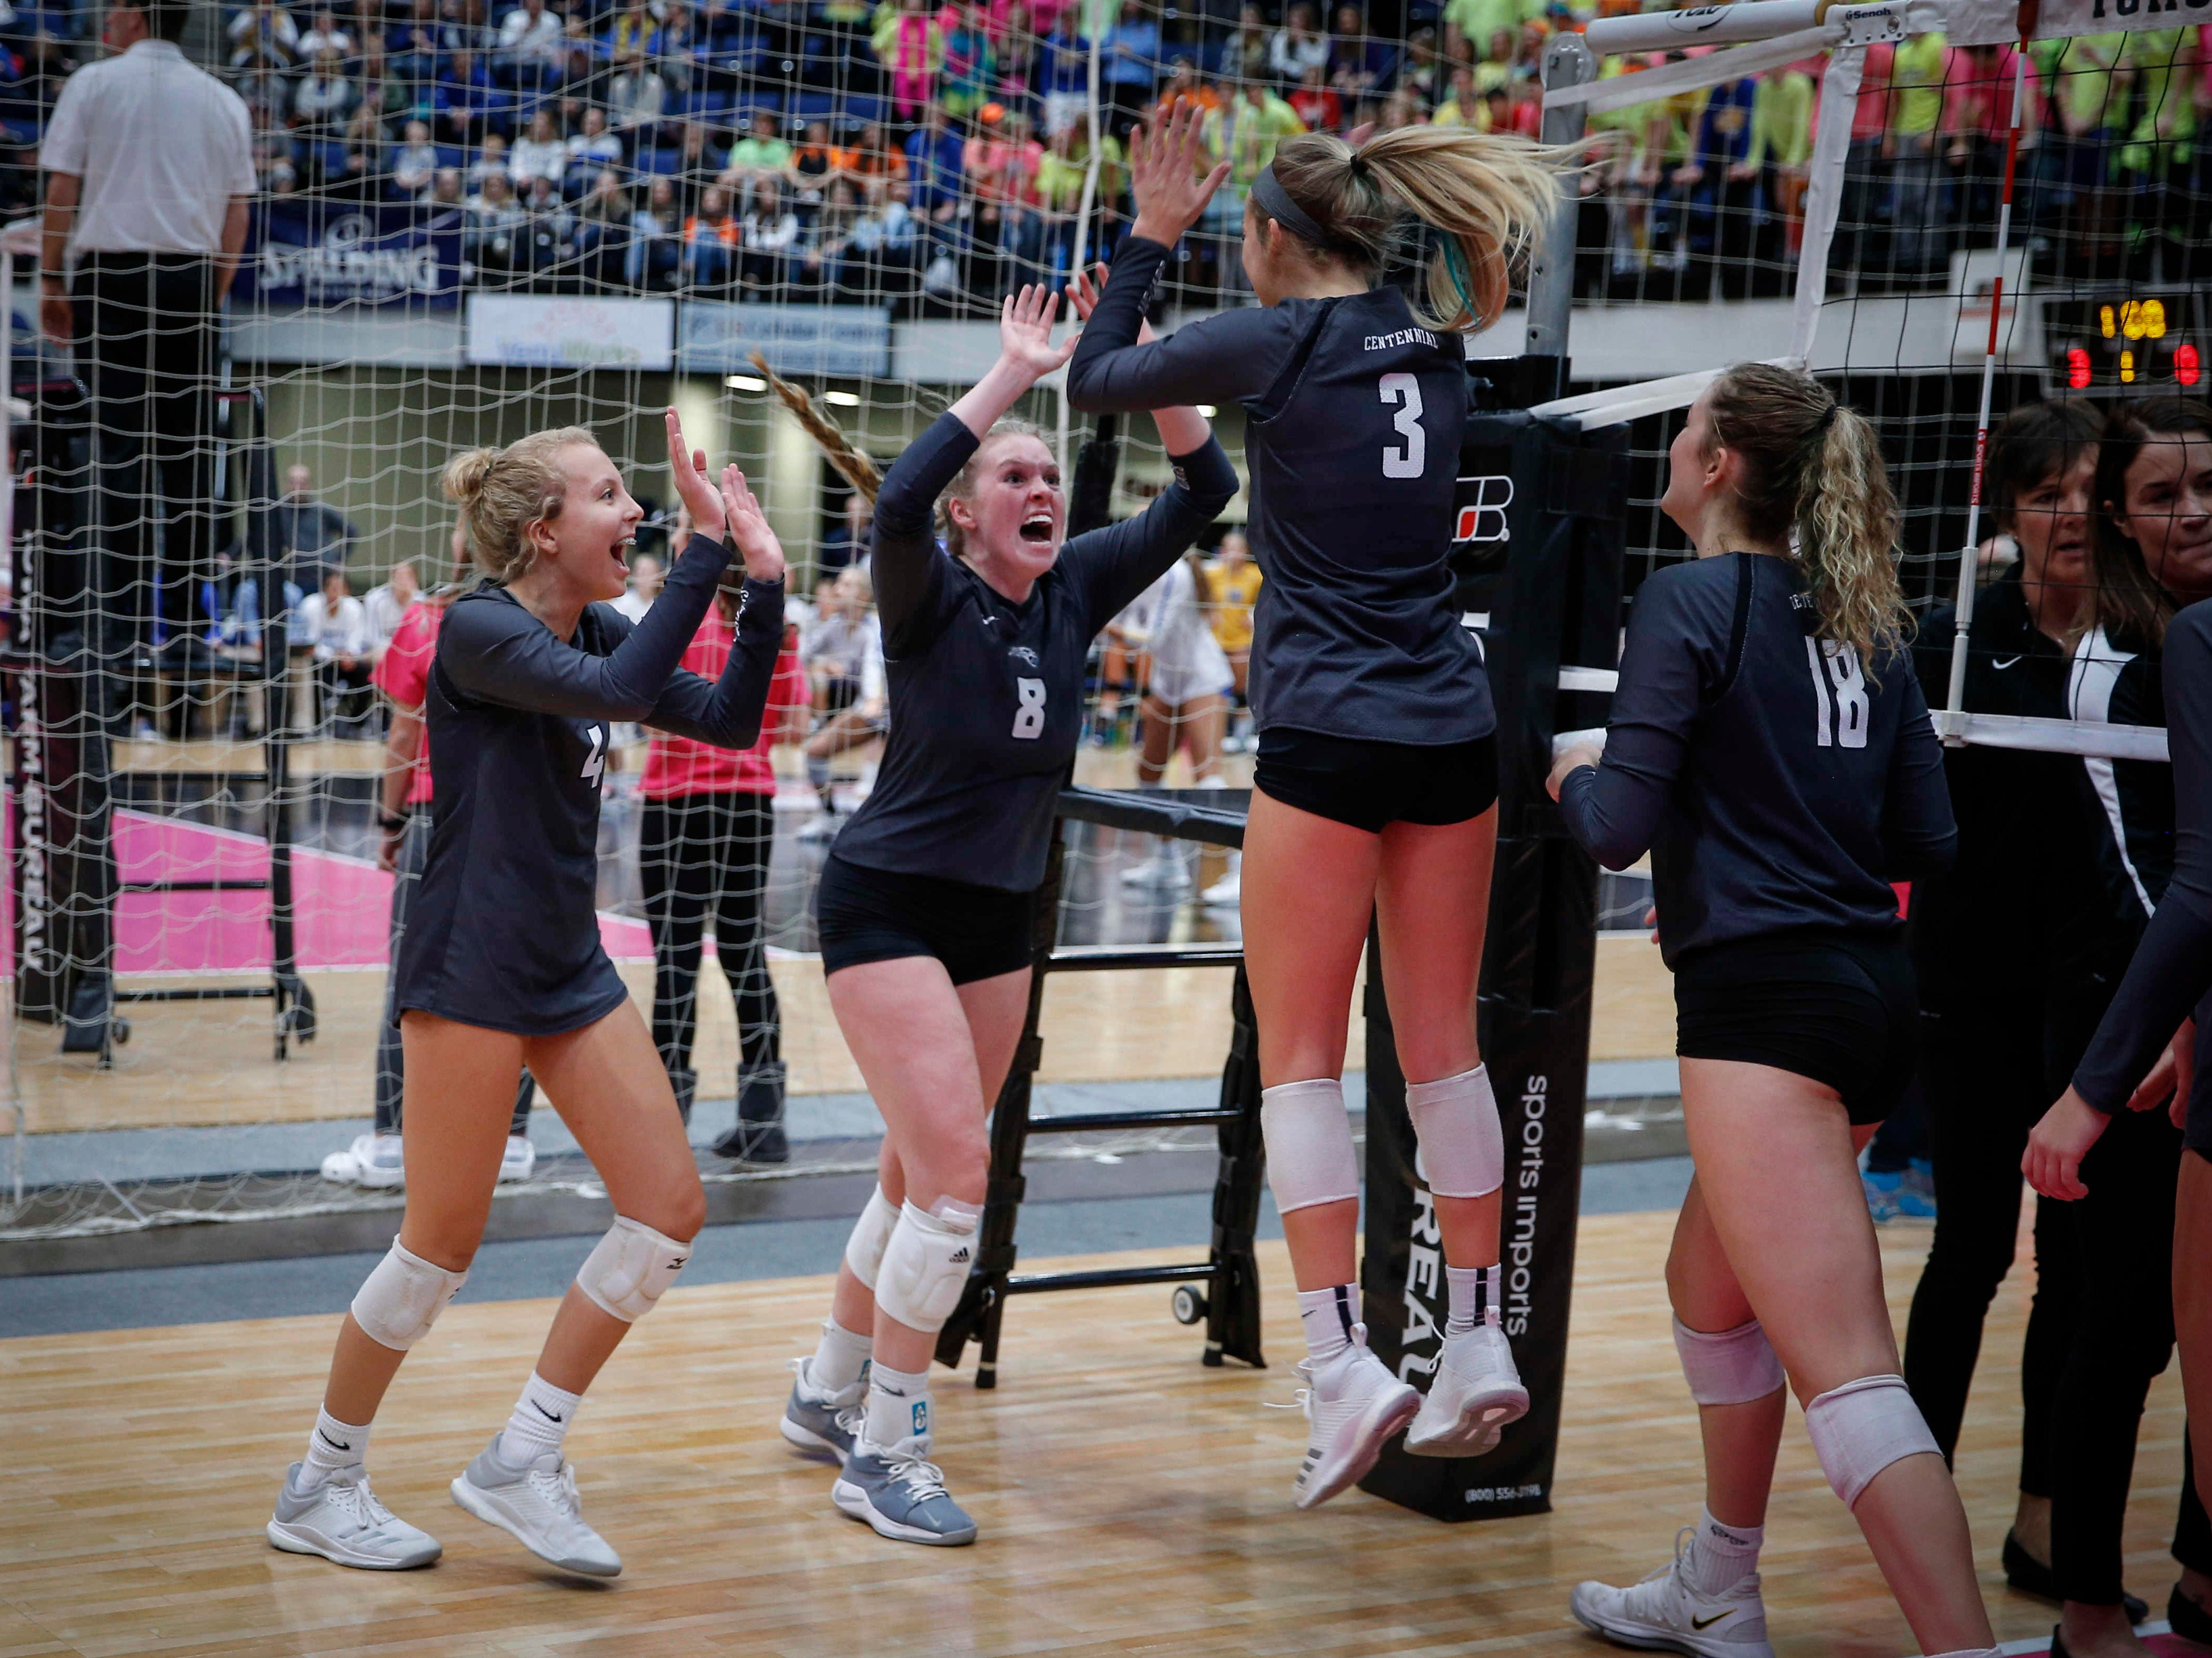 Members of the Ankeny Centennial volleyball team celebrate a 5-set win over West Des Moines Valley in Class 5A during the 2018 Iowa High School state volleyball tournament on Thursday, Nov. 8, 2018, in Cedar Rapids.